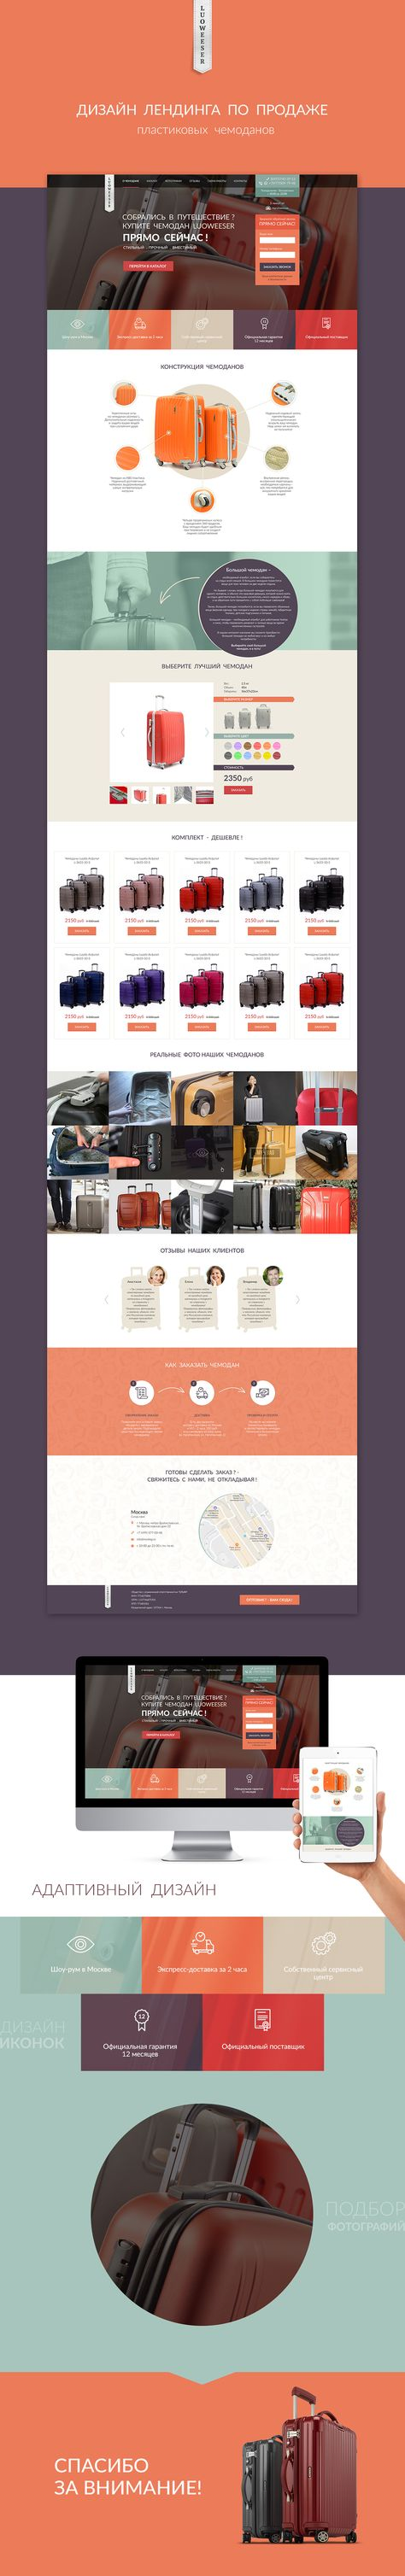 Design of Landing Page for Luoweeser